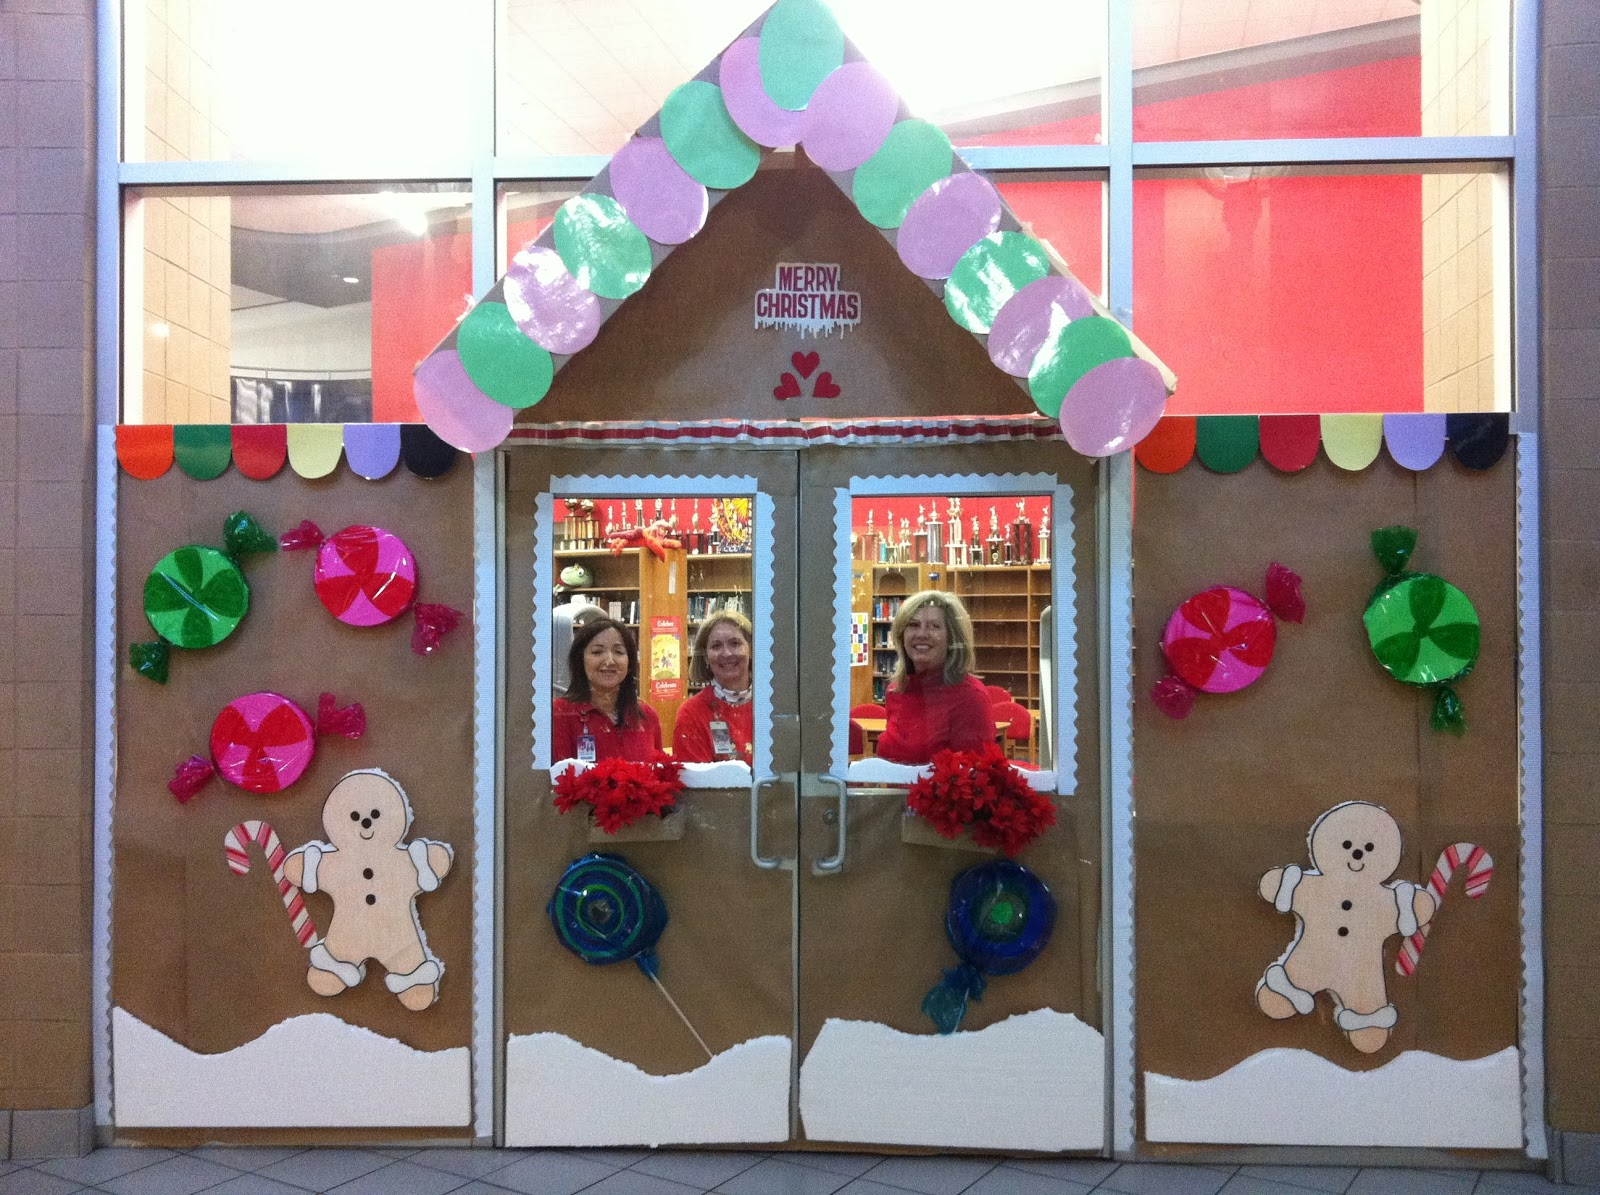 Christmas door decorating contest gingerbread house - Christmas Door Decorating Contest Gingerbread House Photo 2